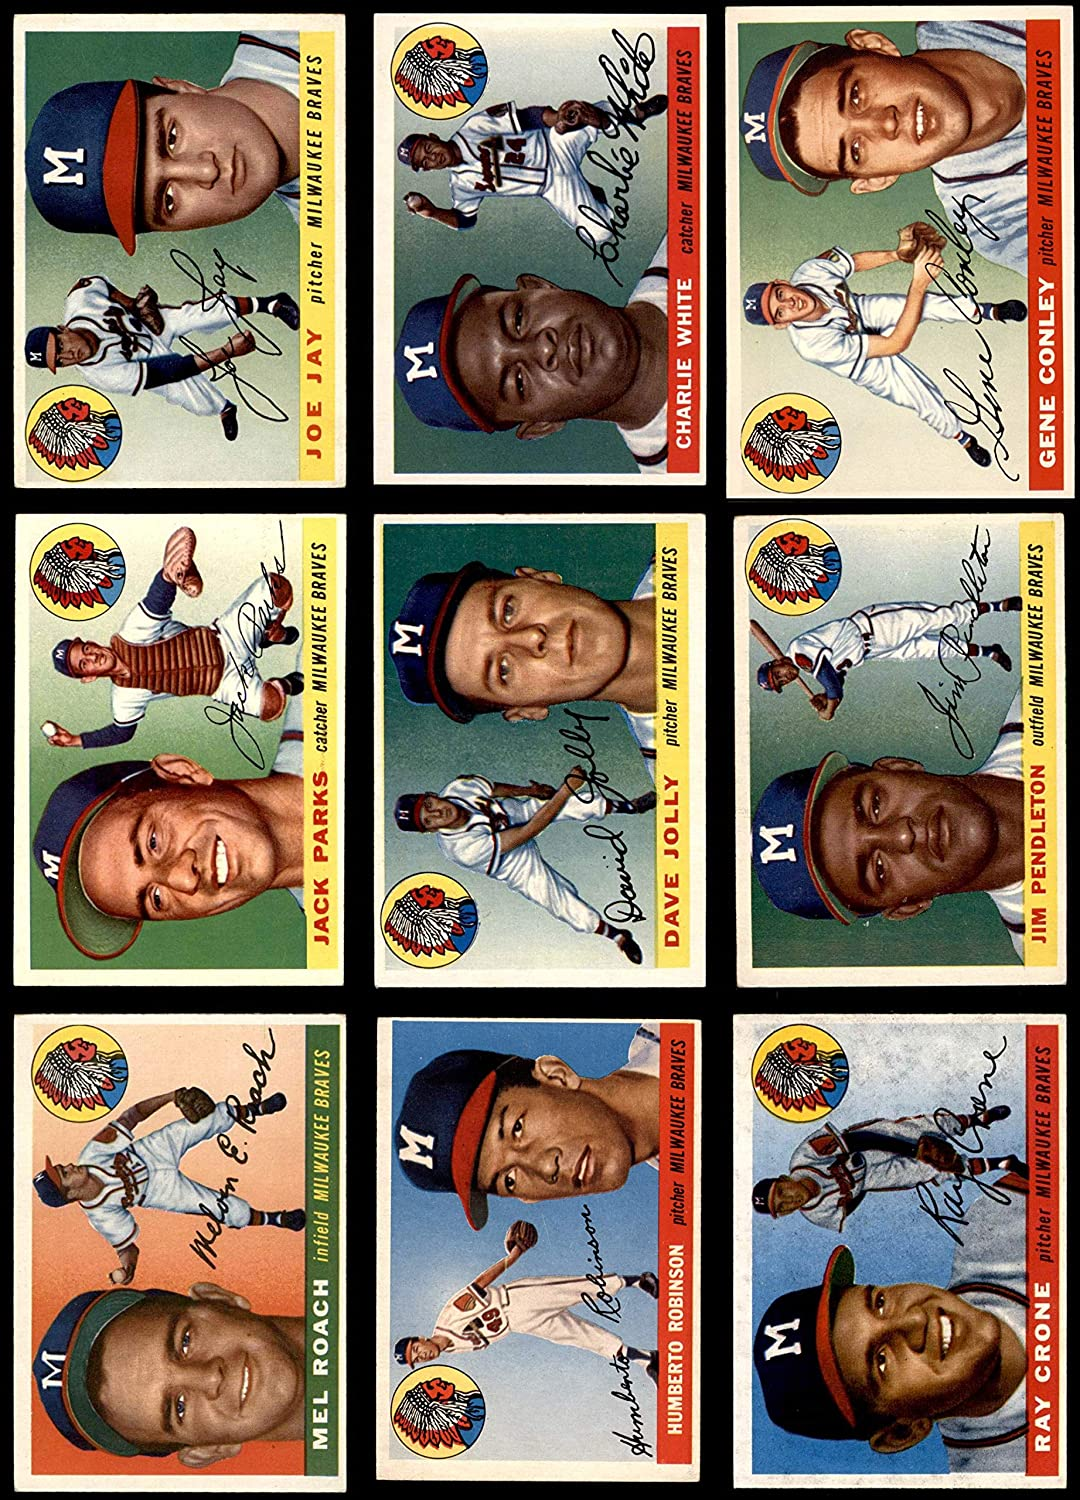 1955 Topps Milwaukee Braves Near Team Set Milwaukee Braves (Baseball Set) Dean's Cards 5 - EX Braves